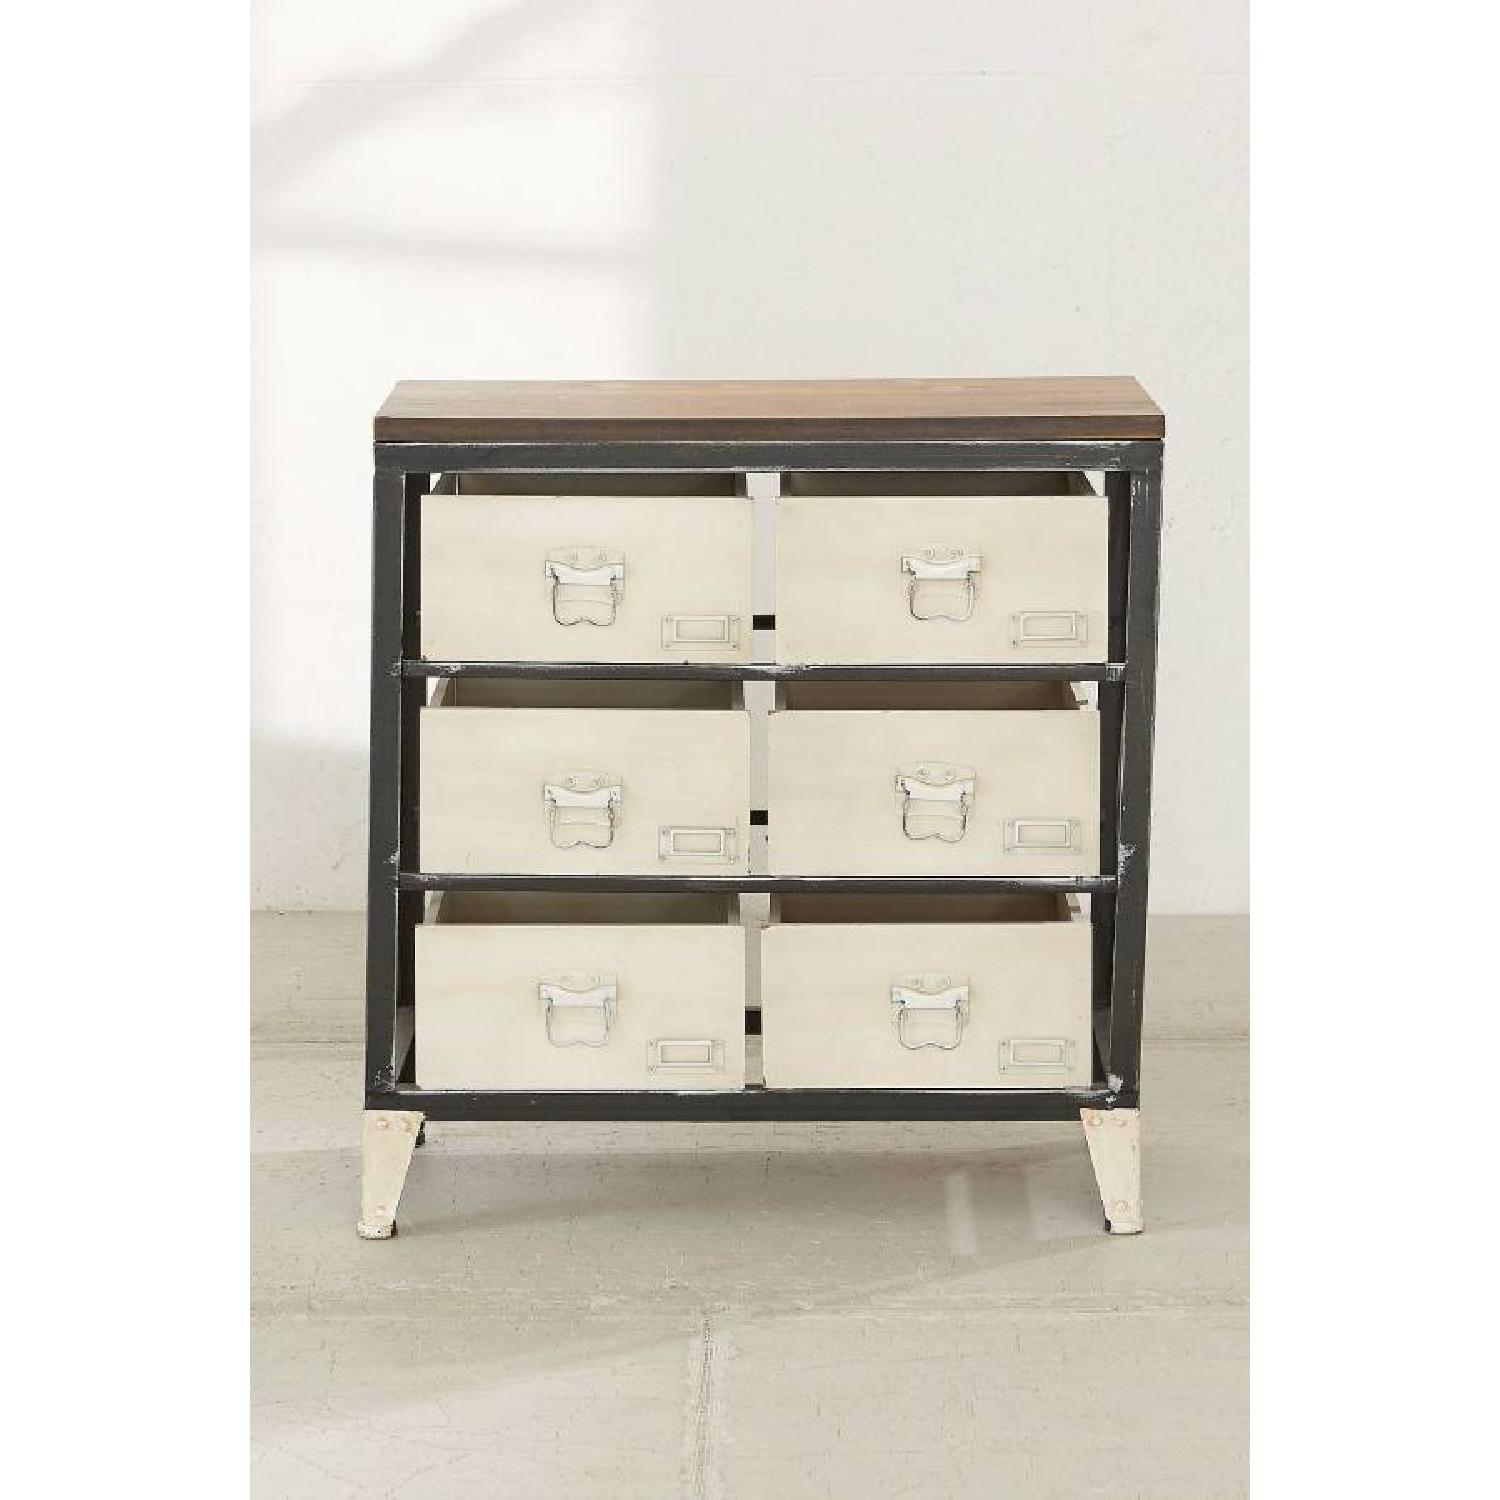 Urban Outfitters Mini Industrial Storage Chests - image-3